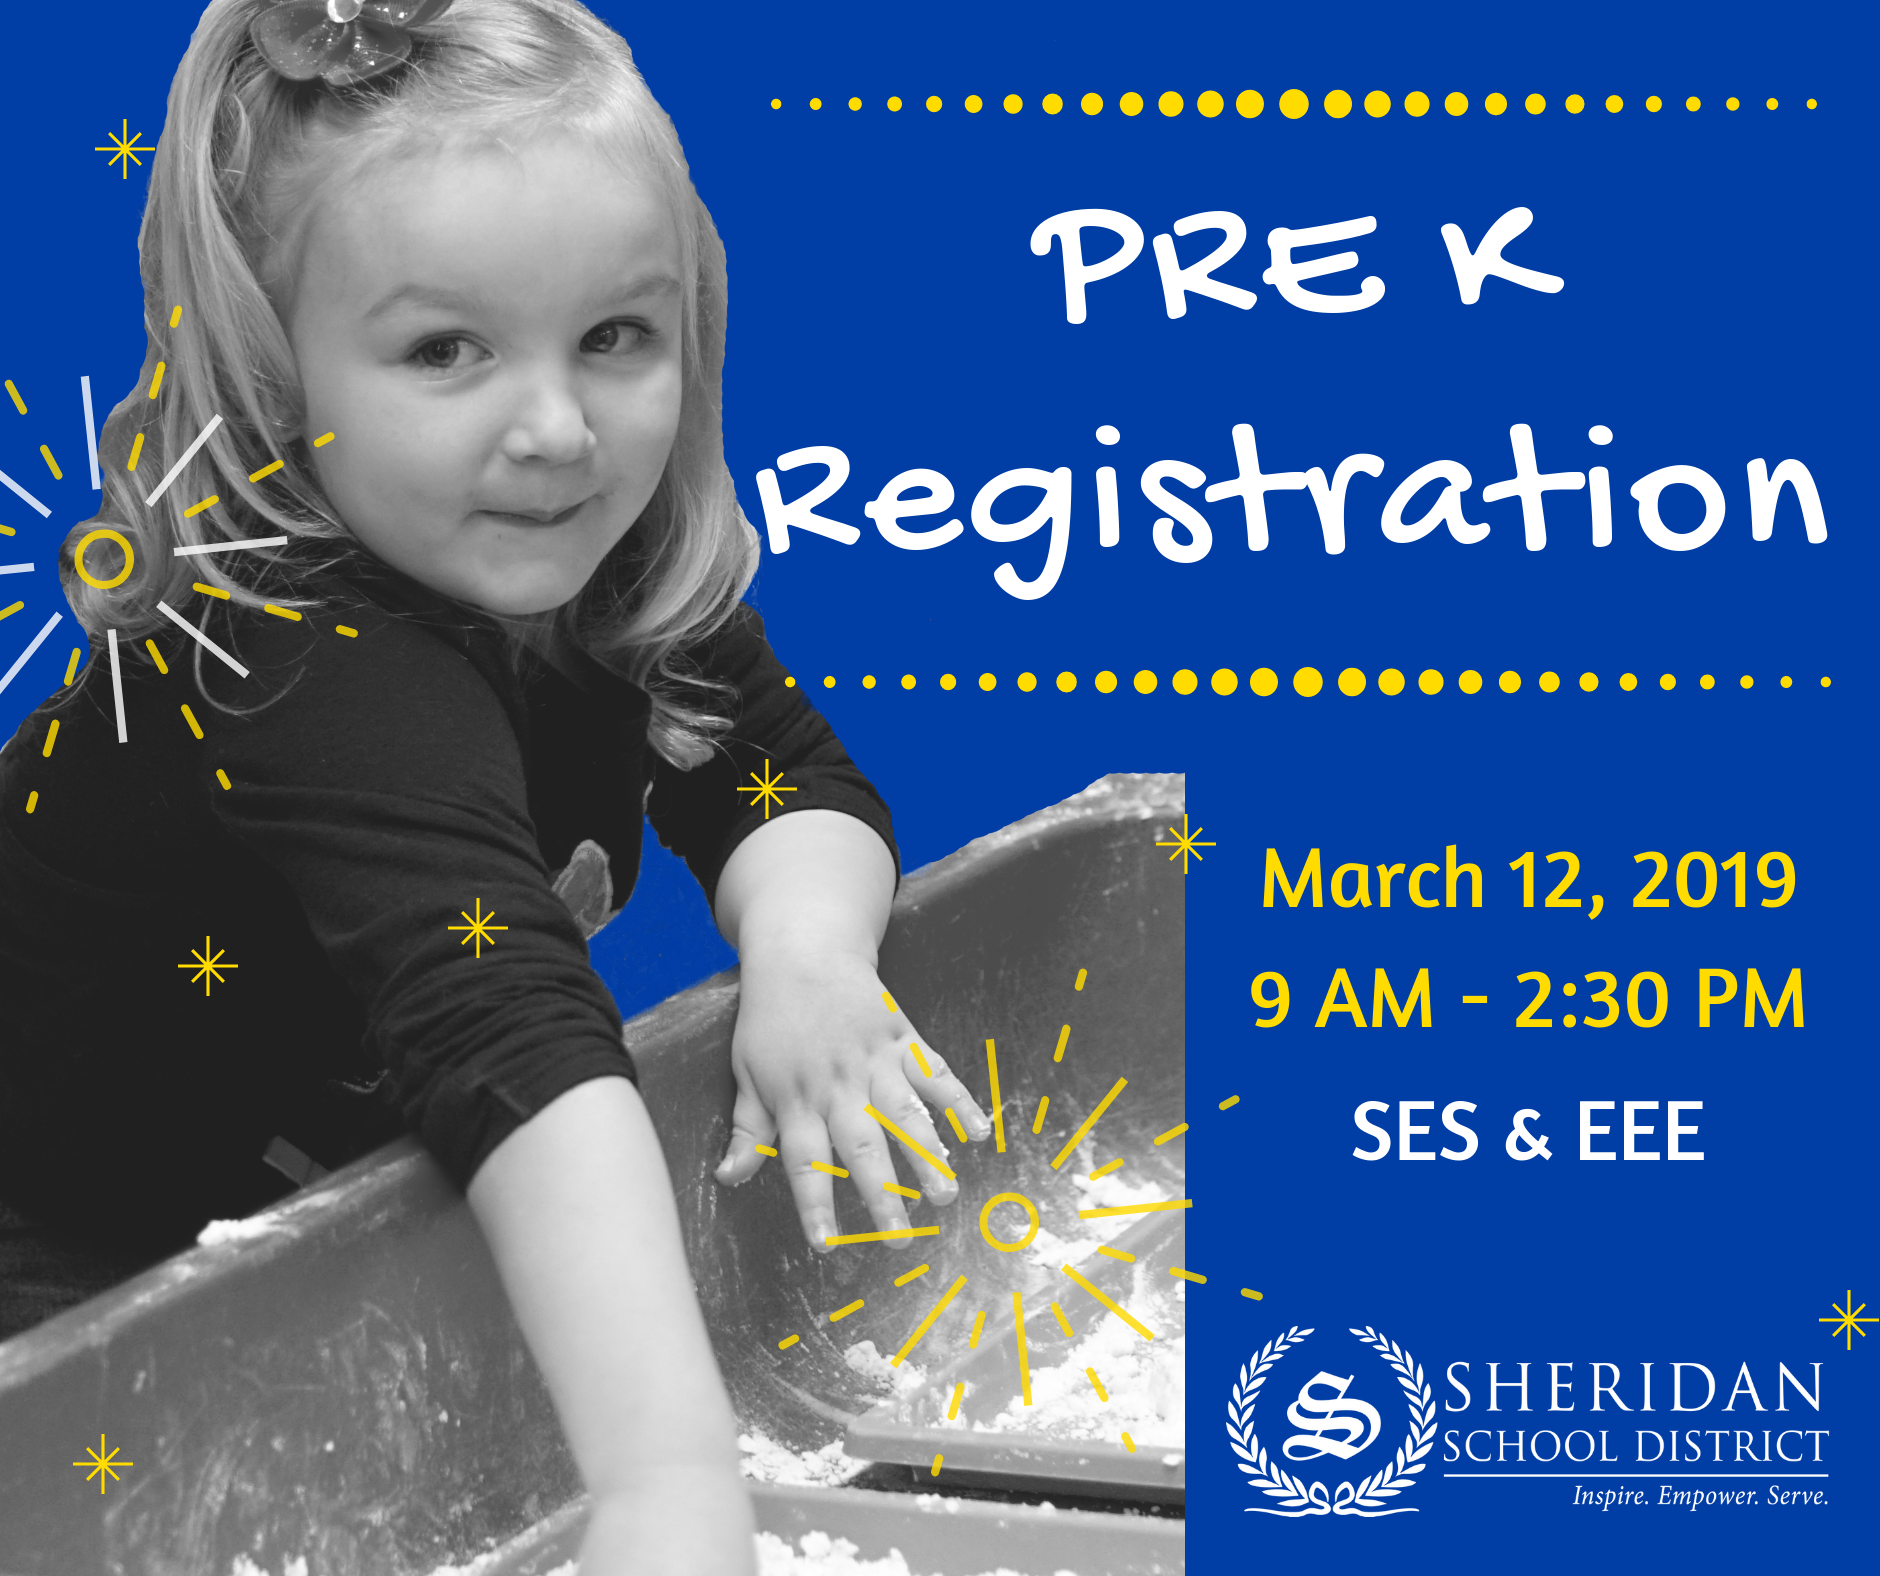 Picture of girl in Preschool with Registration Date: March 12